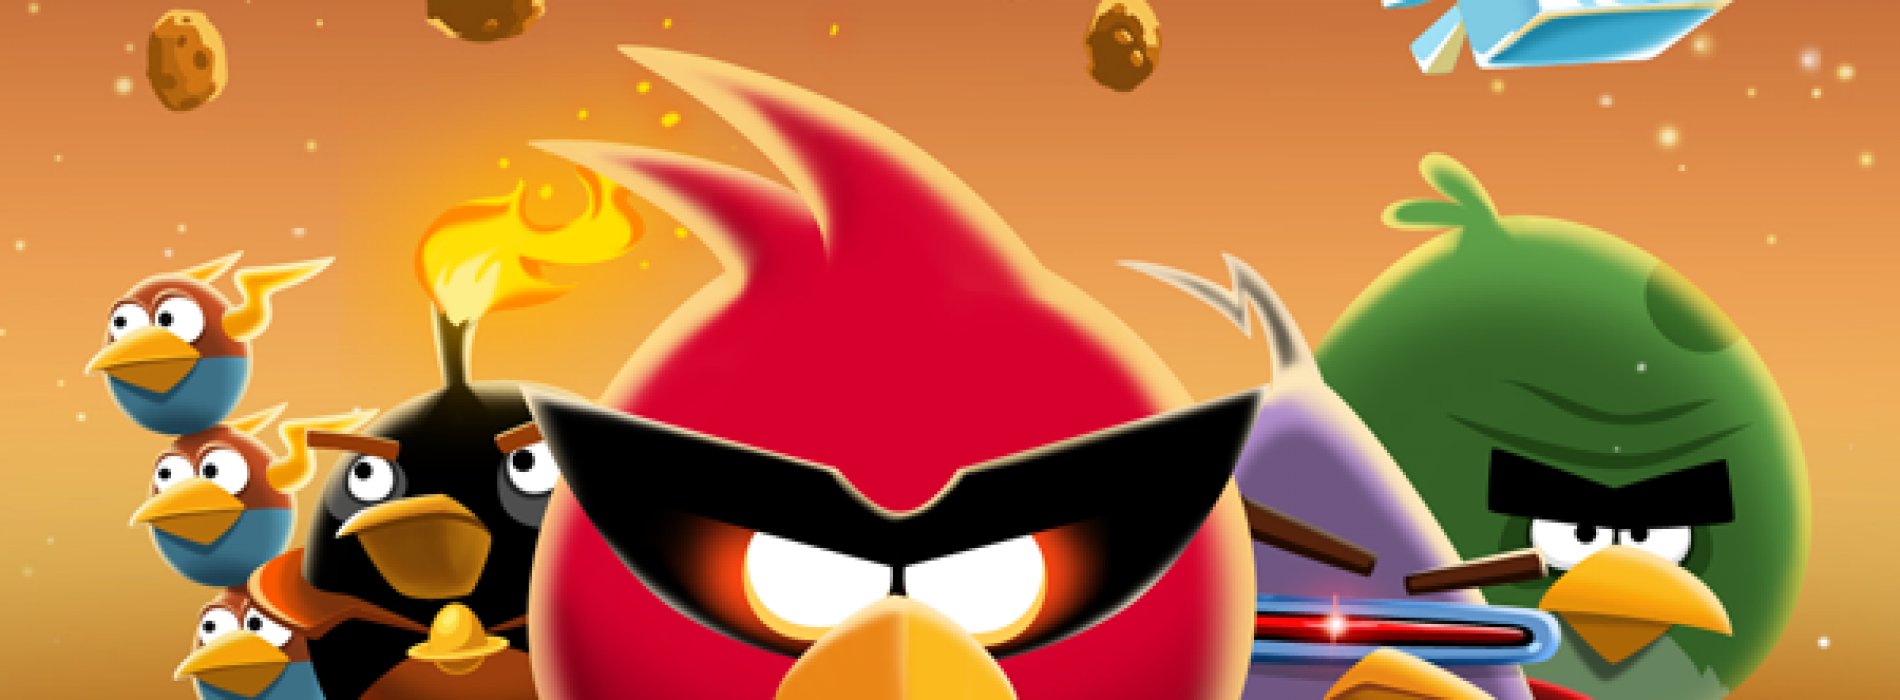 Samsung scores 30 exclusive 'Danger Zone' levels in Angry Birds Space